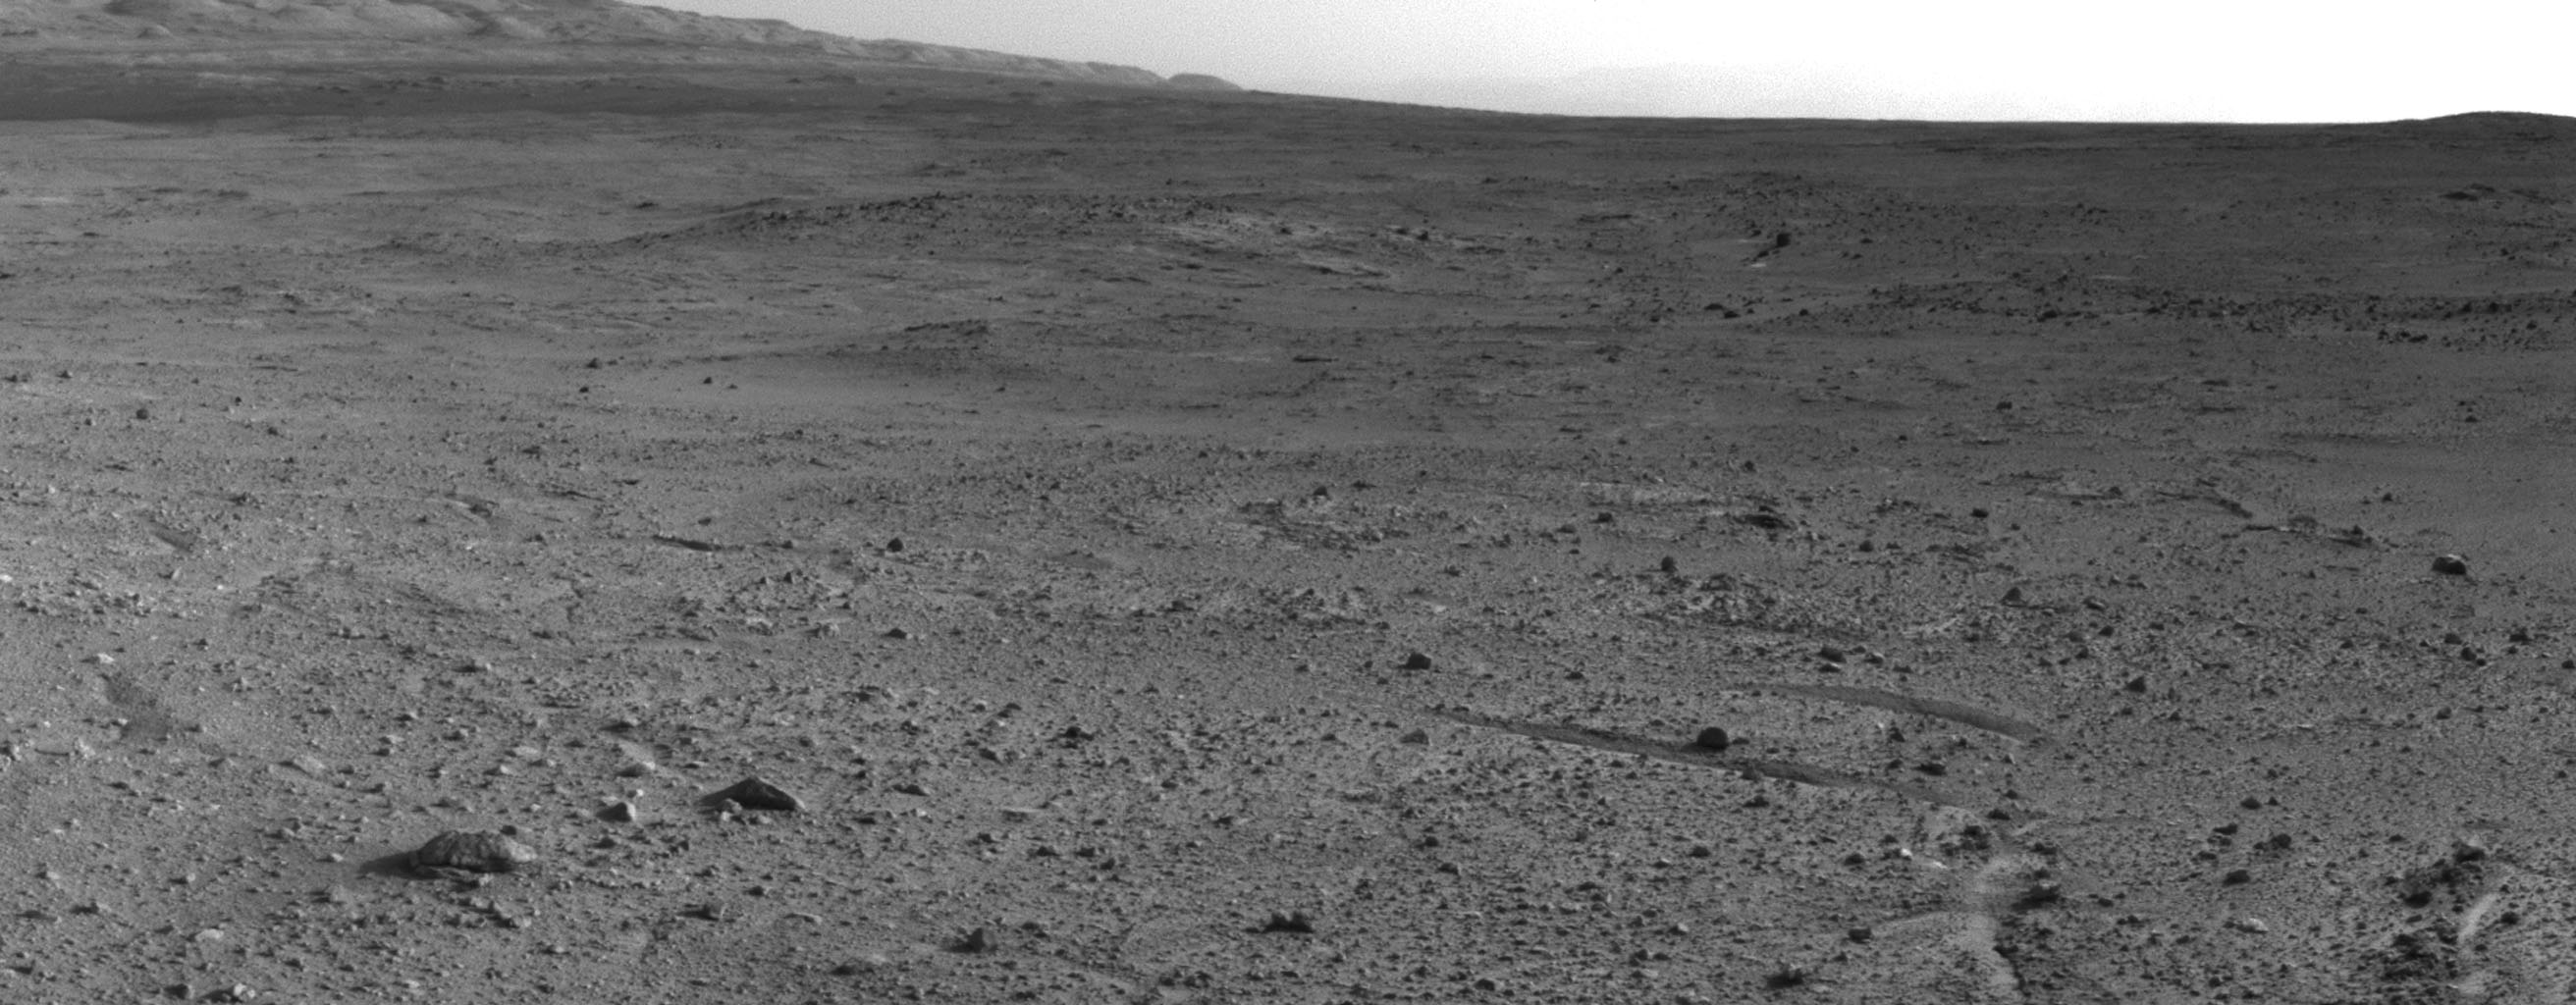 In the upper central portion of this image is a patch of ground paler than its surroundings as seen by NASA's Mars rover Curiosity after reaching the top of a rise called 'Panorama Point.'